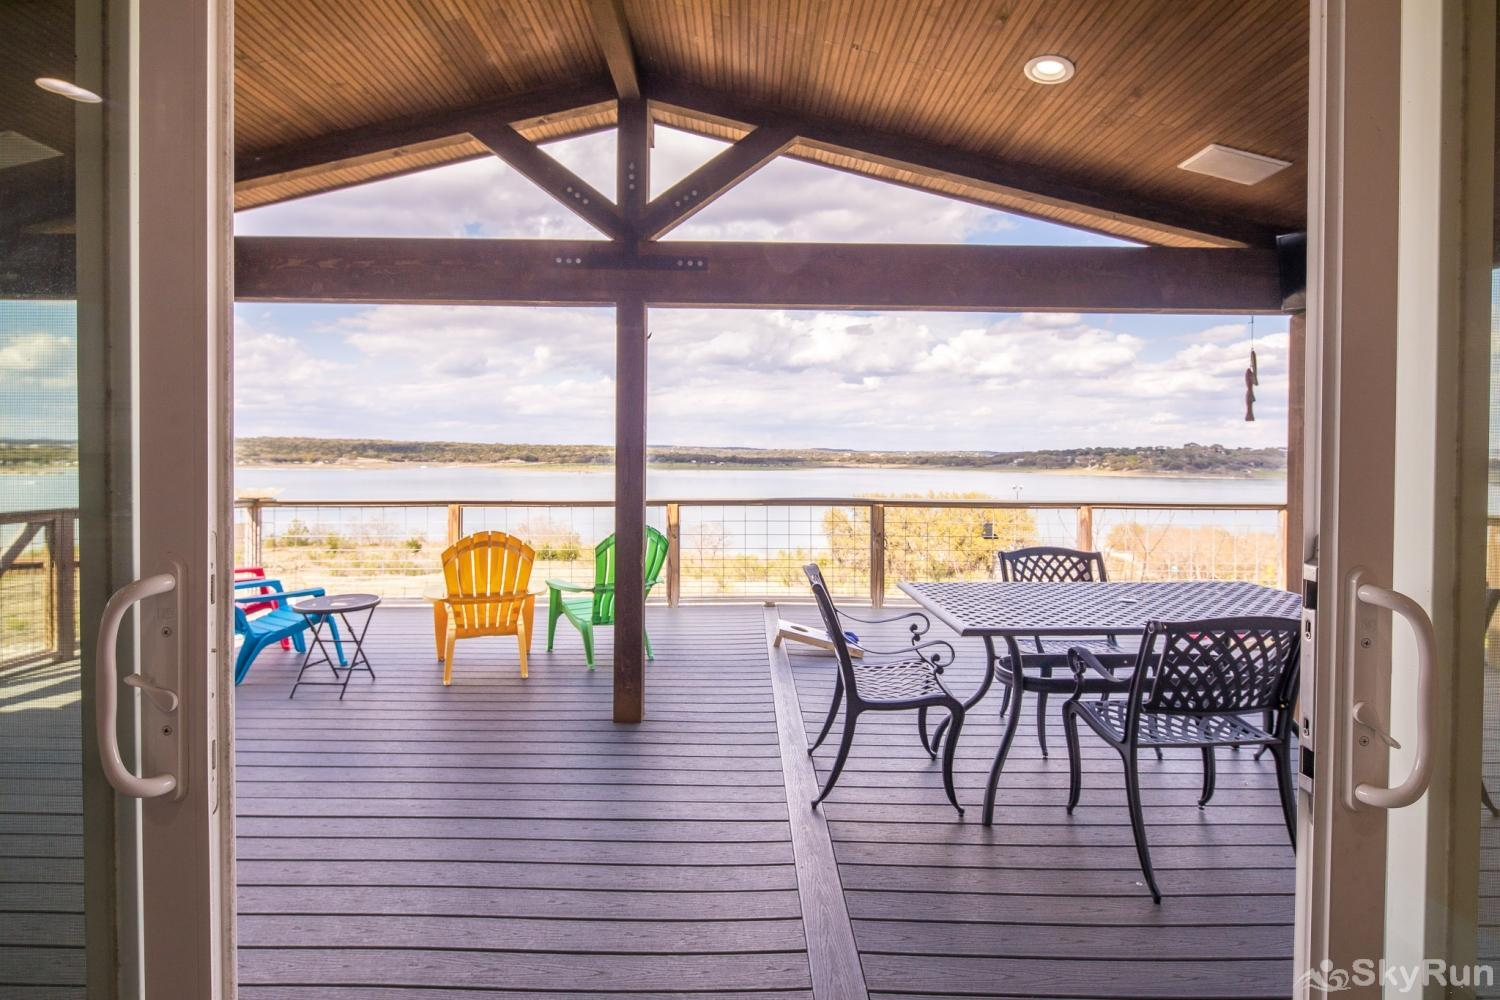 LEDGEROCK POINTE Beautiful view of Canyon Lake - covered and uncovered decks!